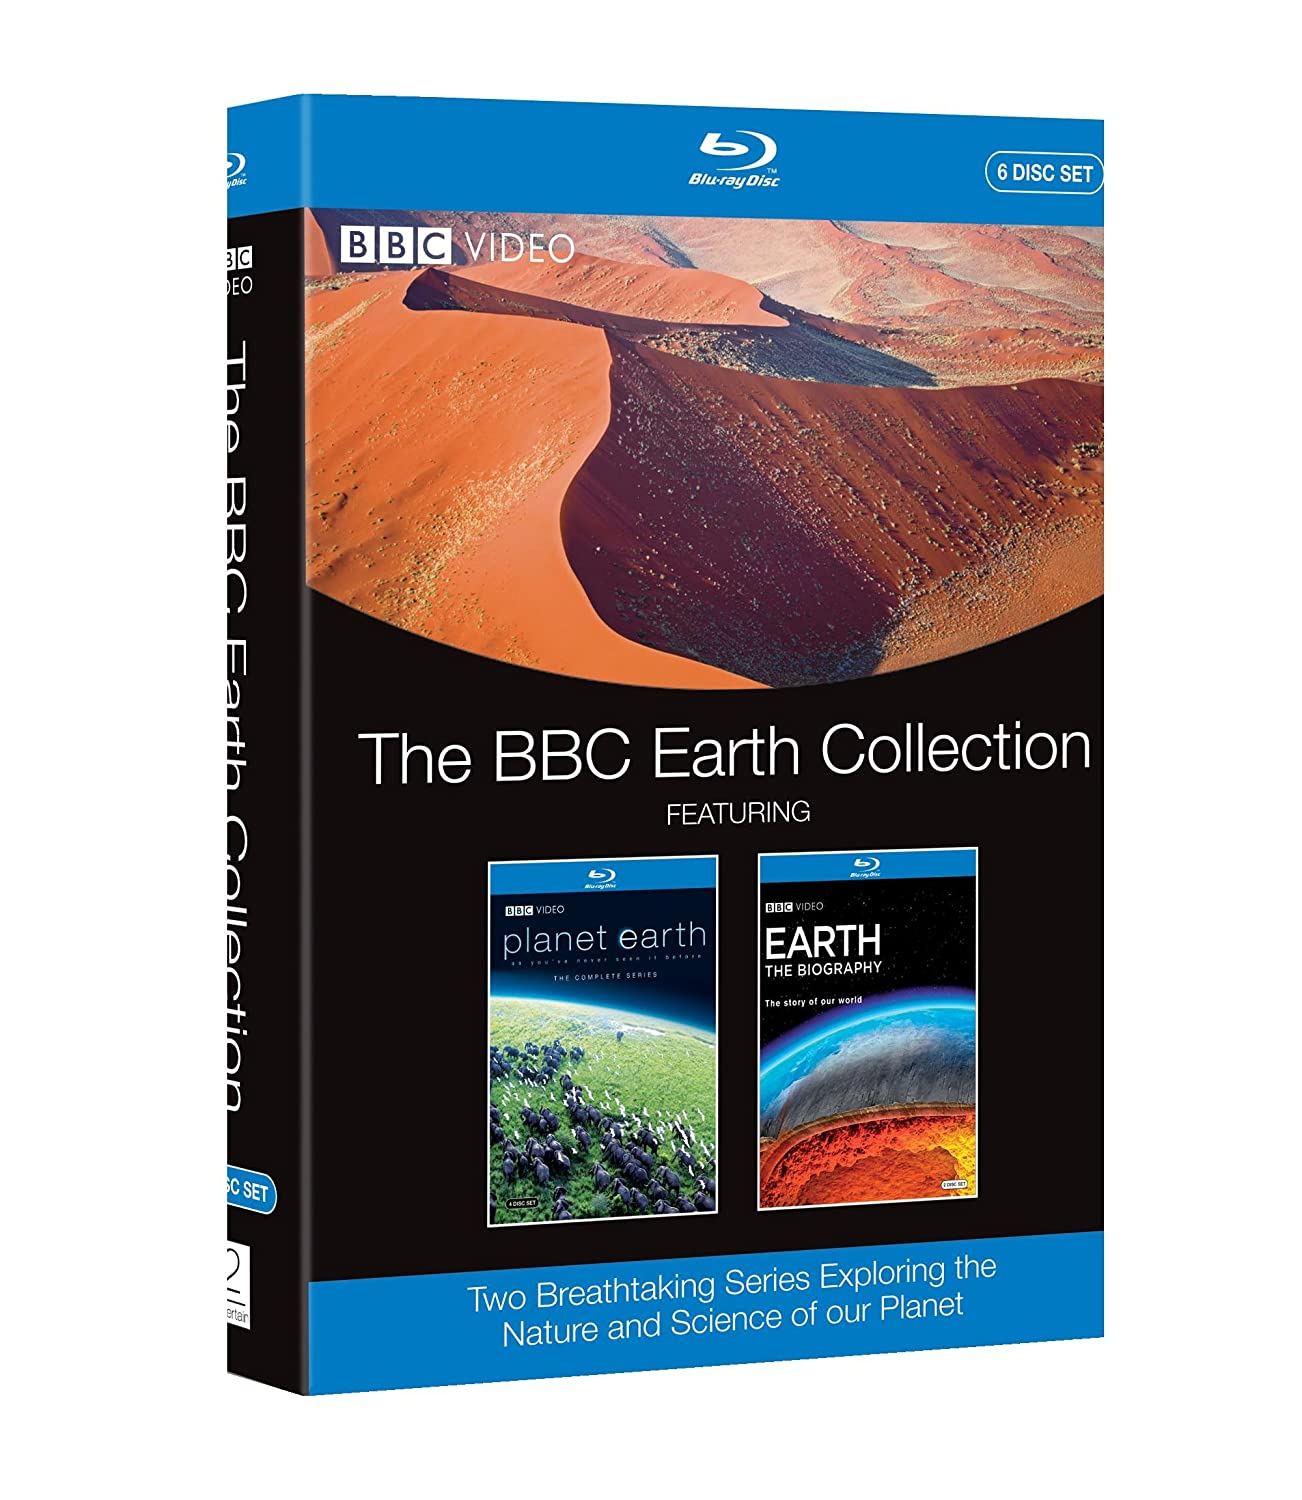 bbc earth the biography